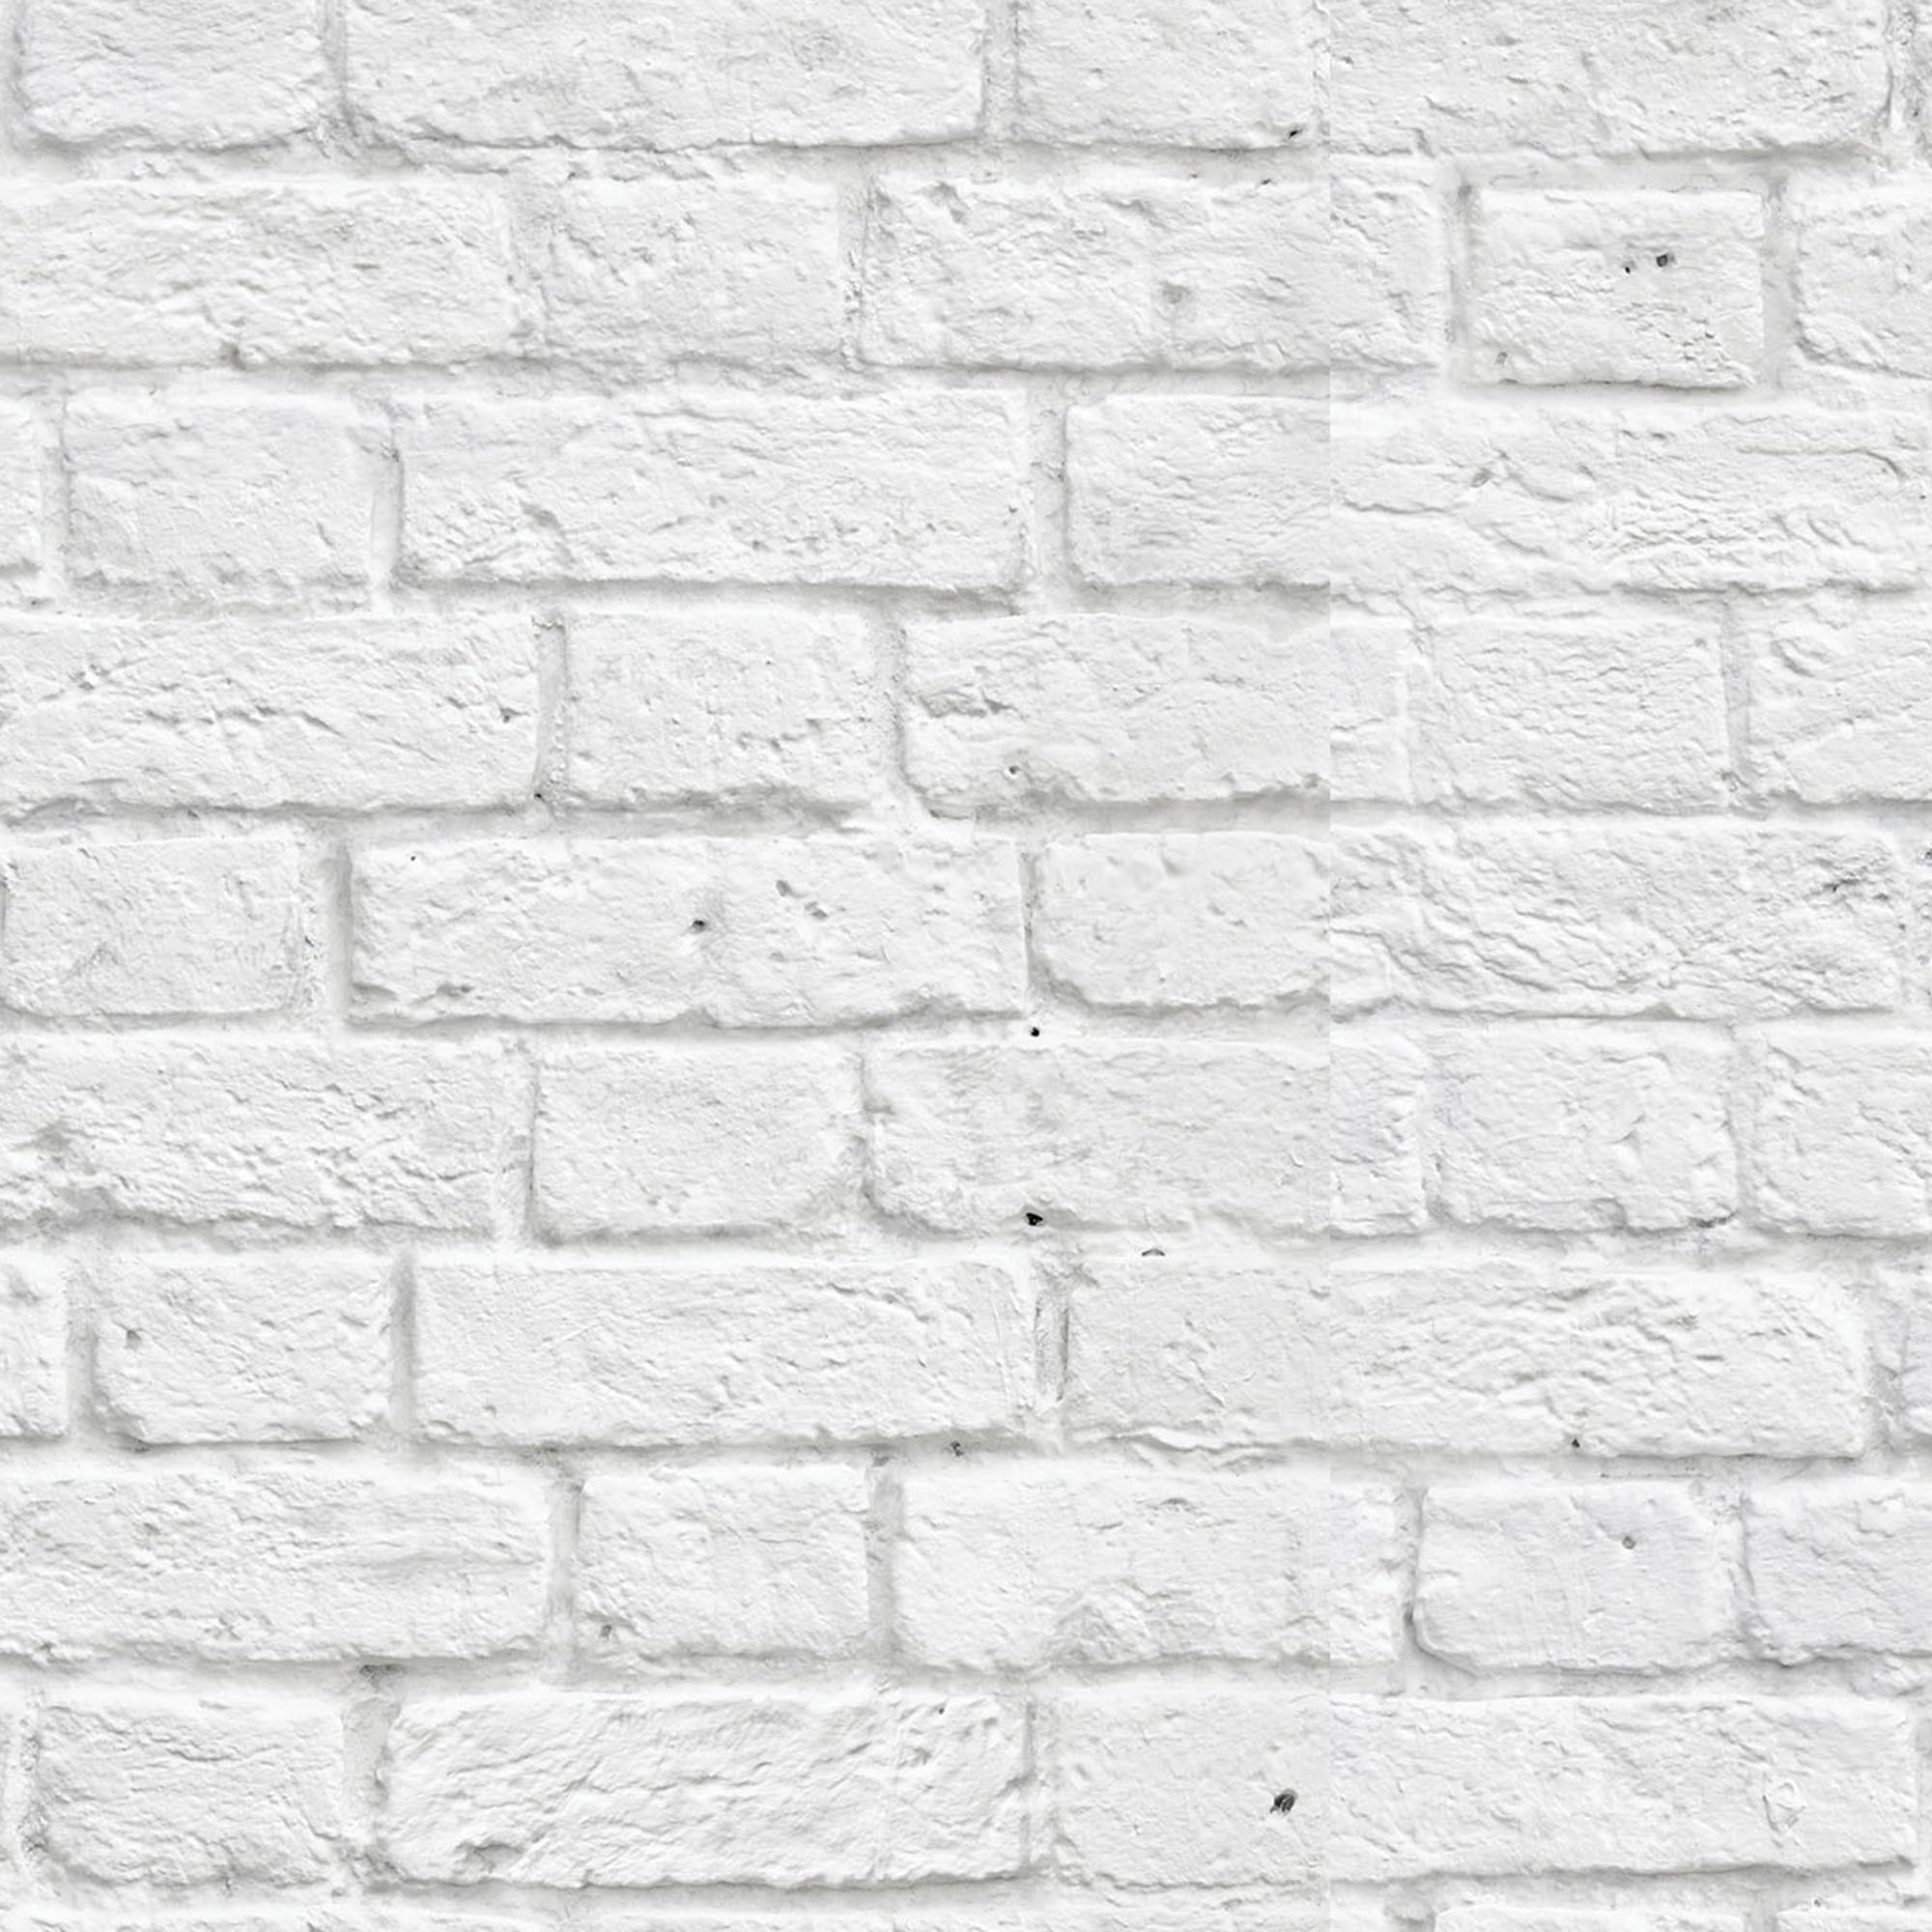 White Brick Wallpaper Download Free Awesome High